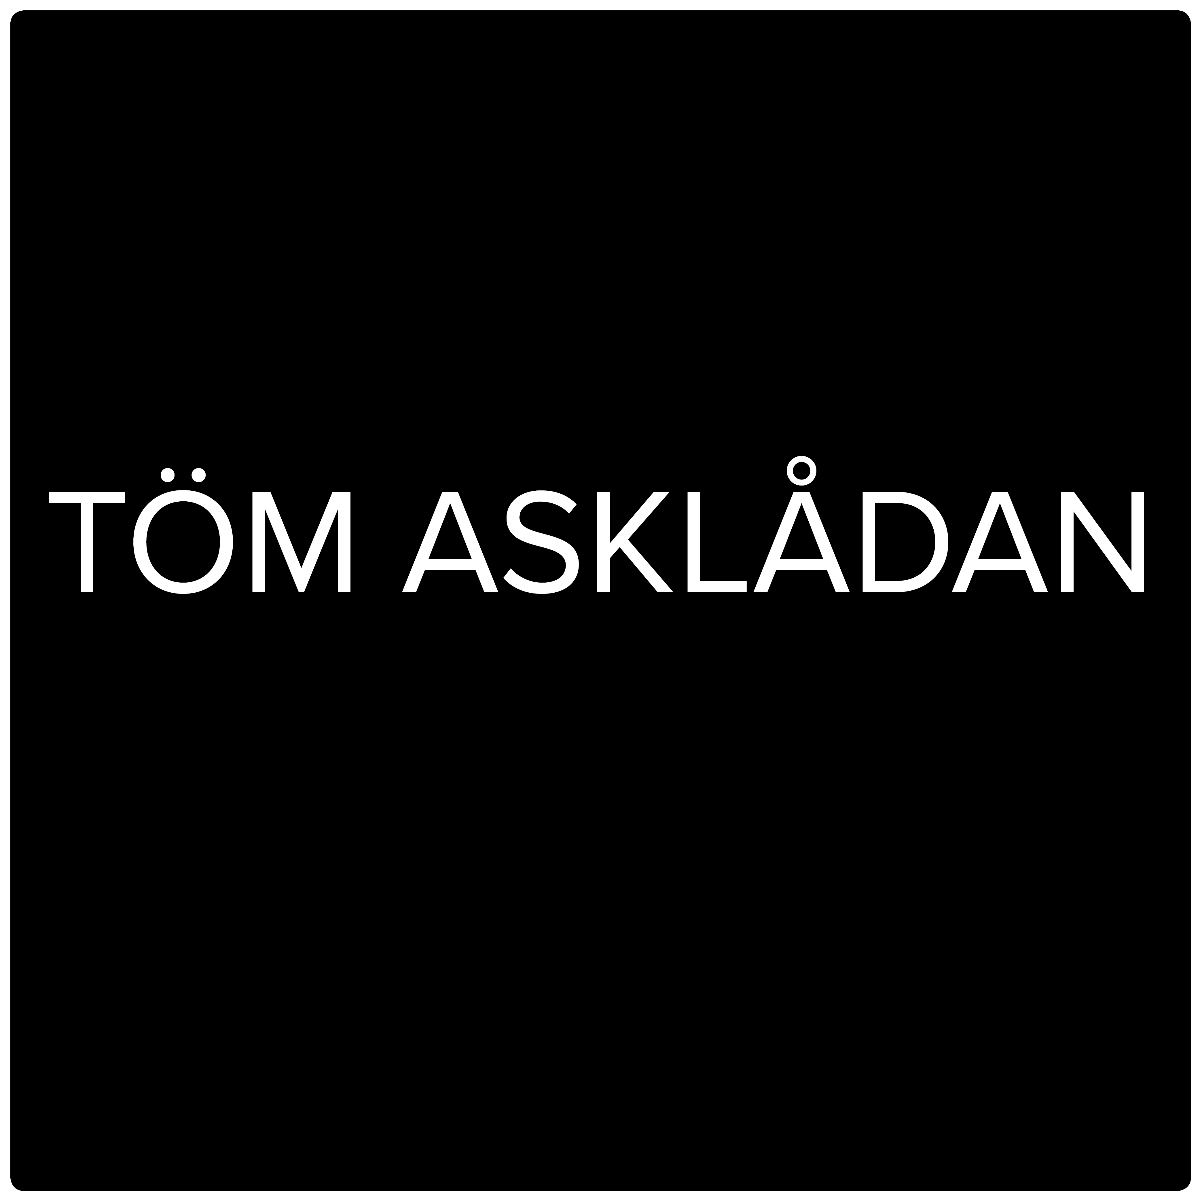 HWAM Video: Töm asklådan